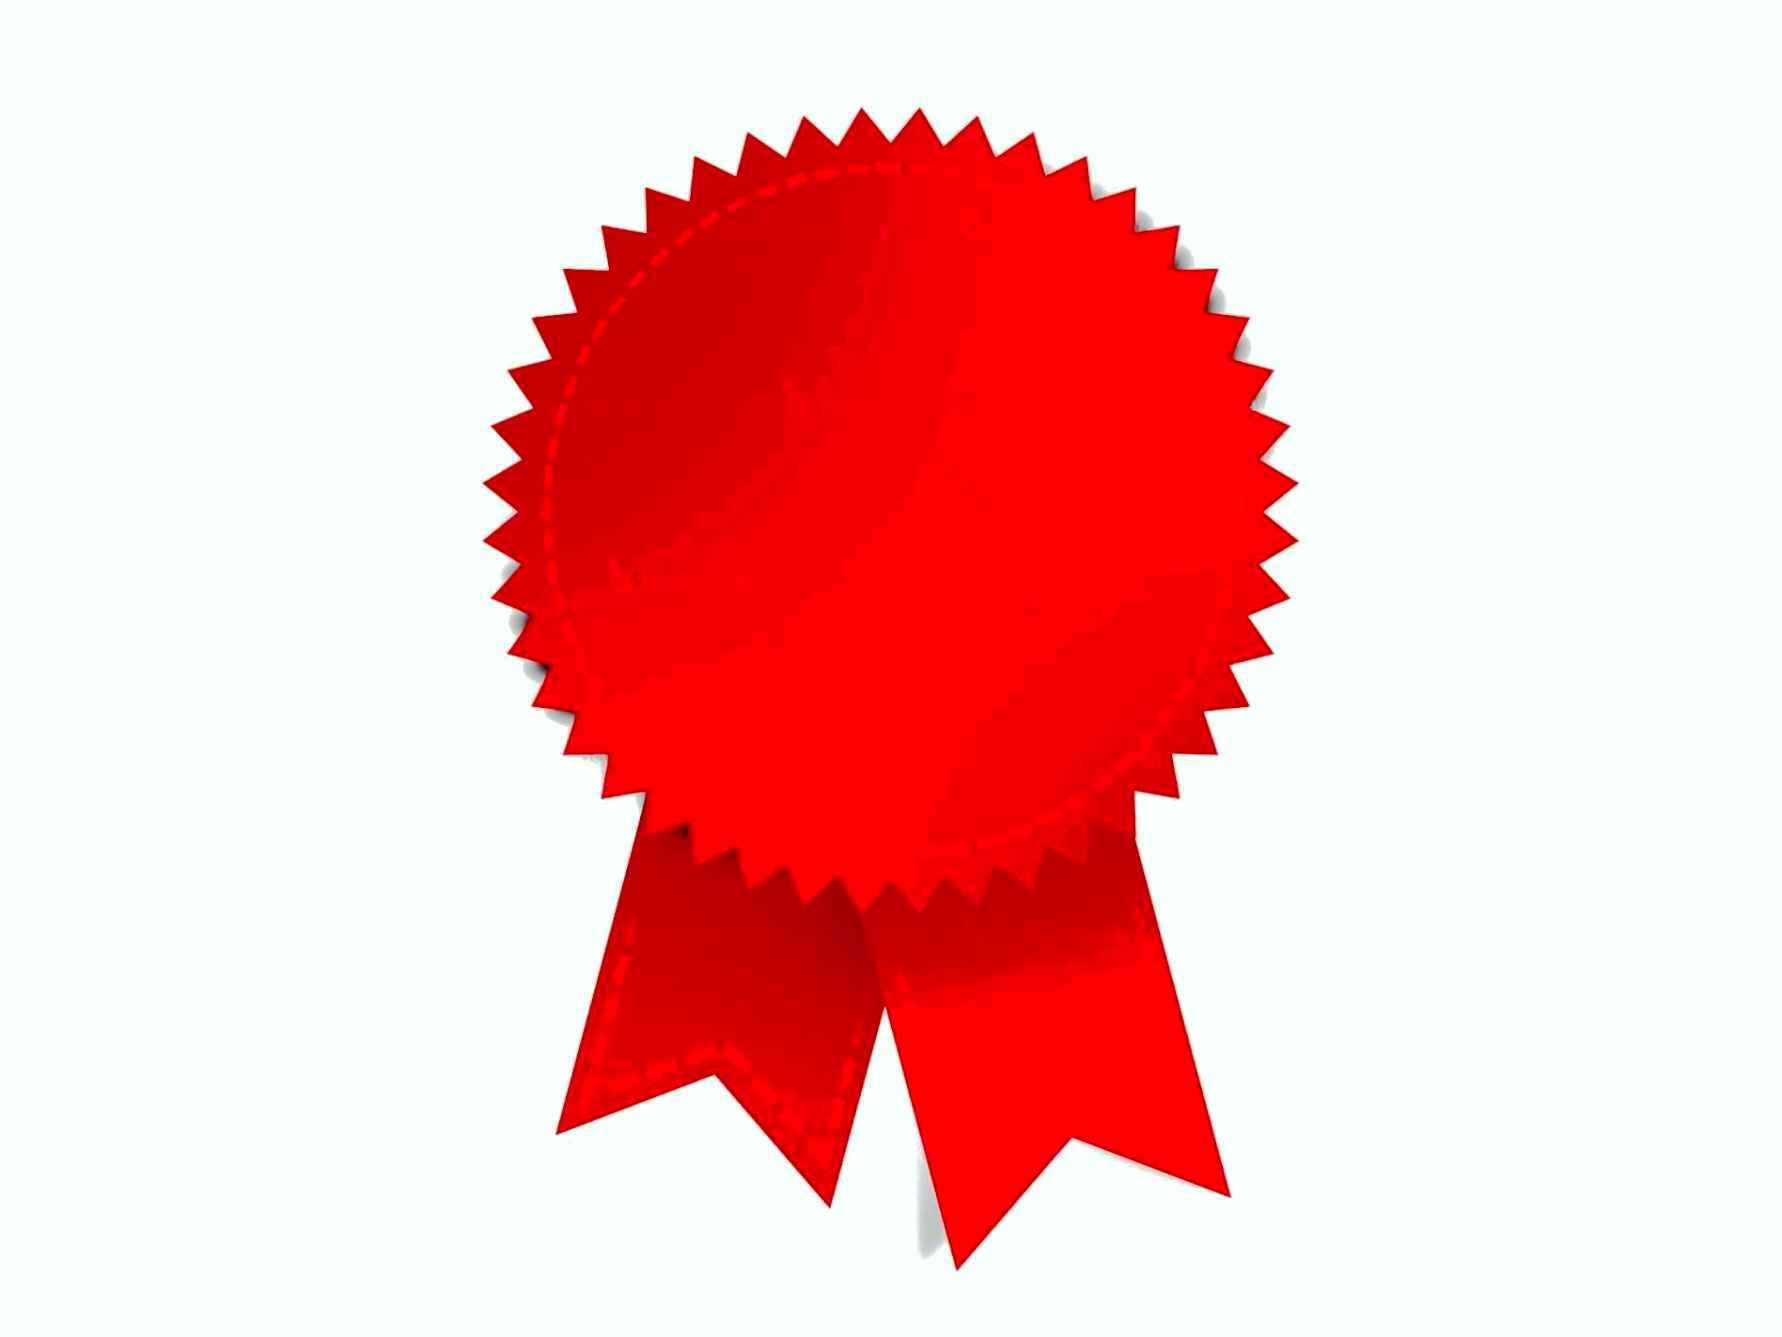 Award Ribbon Template | Free download on ClipArtMag